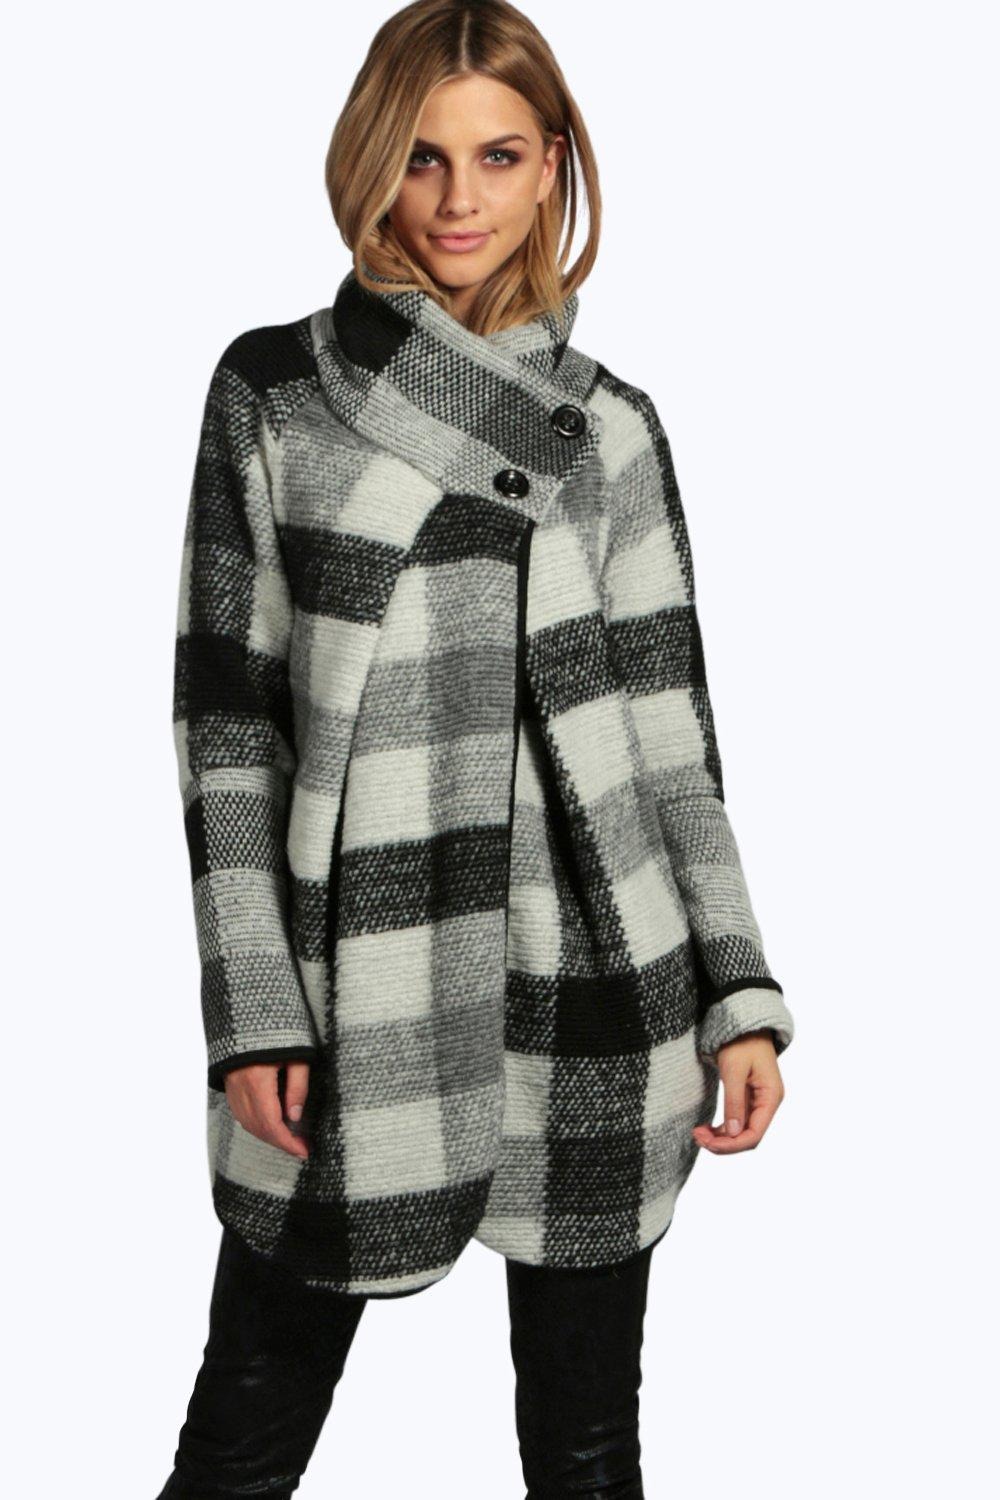 Women's Irish Long Cable Coatigan $ $ Irish Long Cable Coatigan The contrast stitching in this Irish Cable Knit Coatigan creates visual interest and is a striking style for this season.